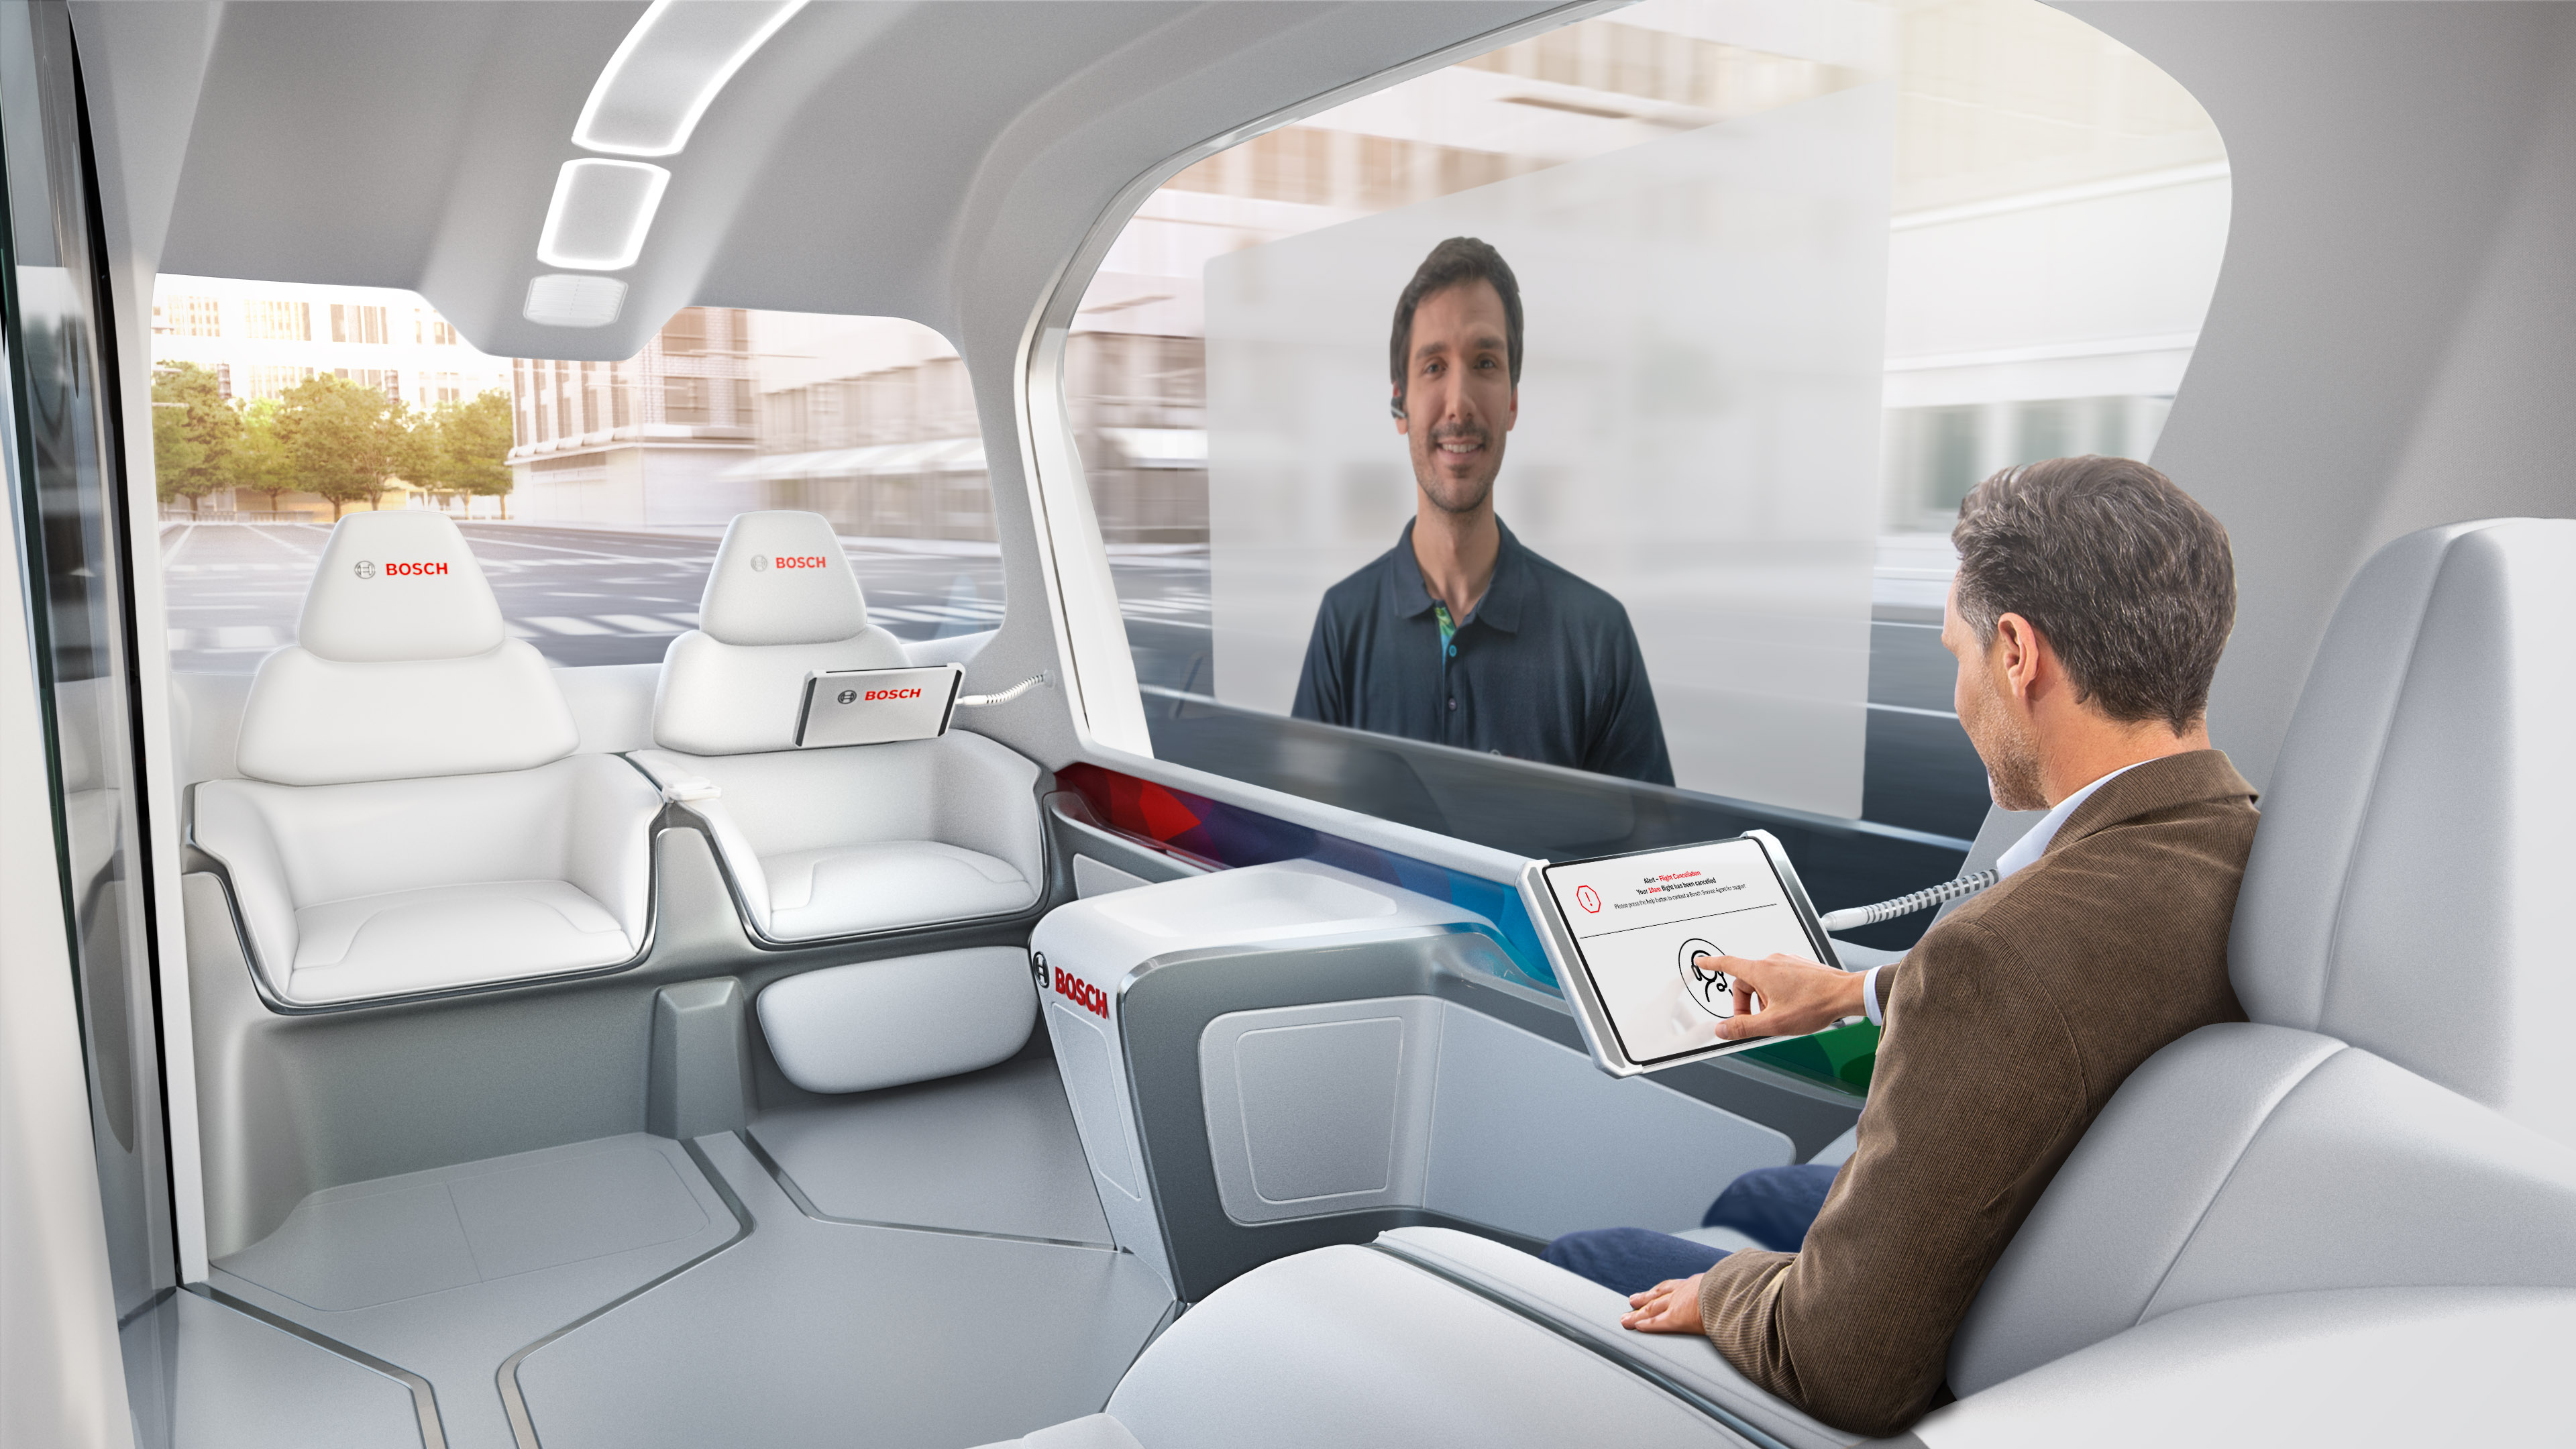 Mobility services from Bosch for a comfortable interior